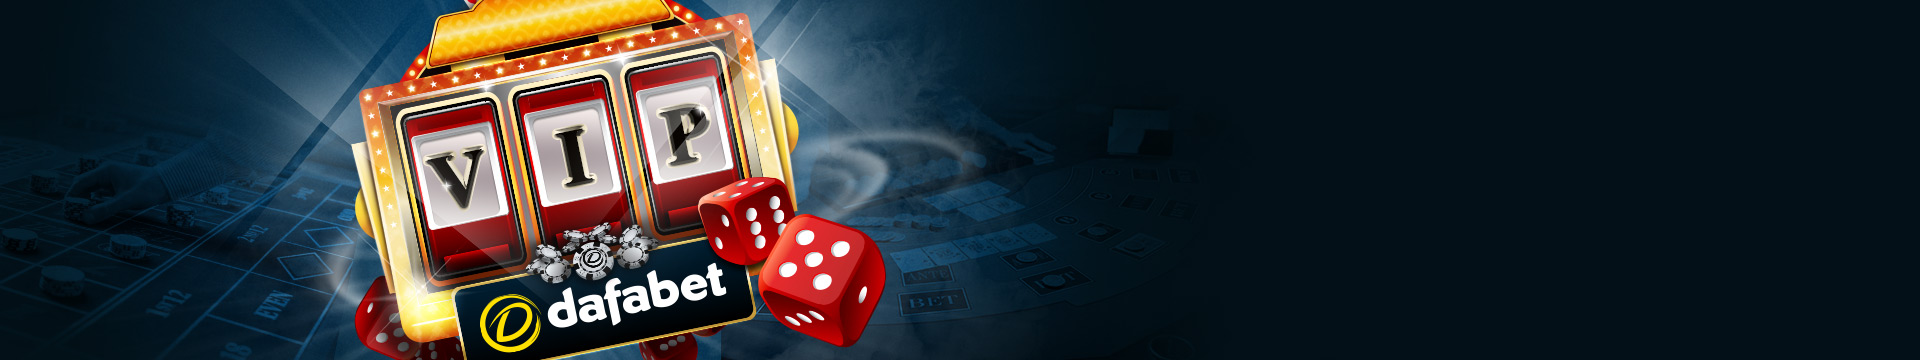 Online Poker Promotion: Poker Prosperity VIP Club